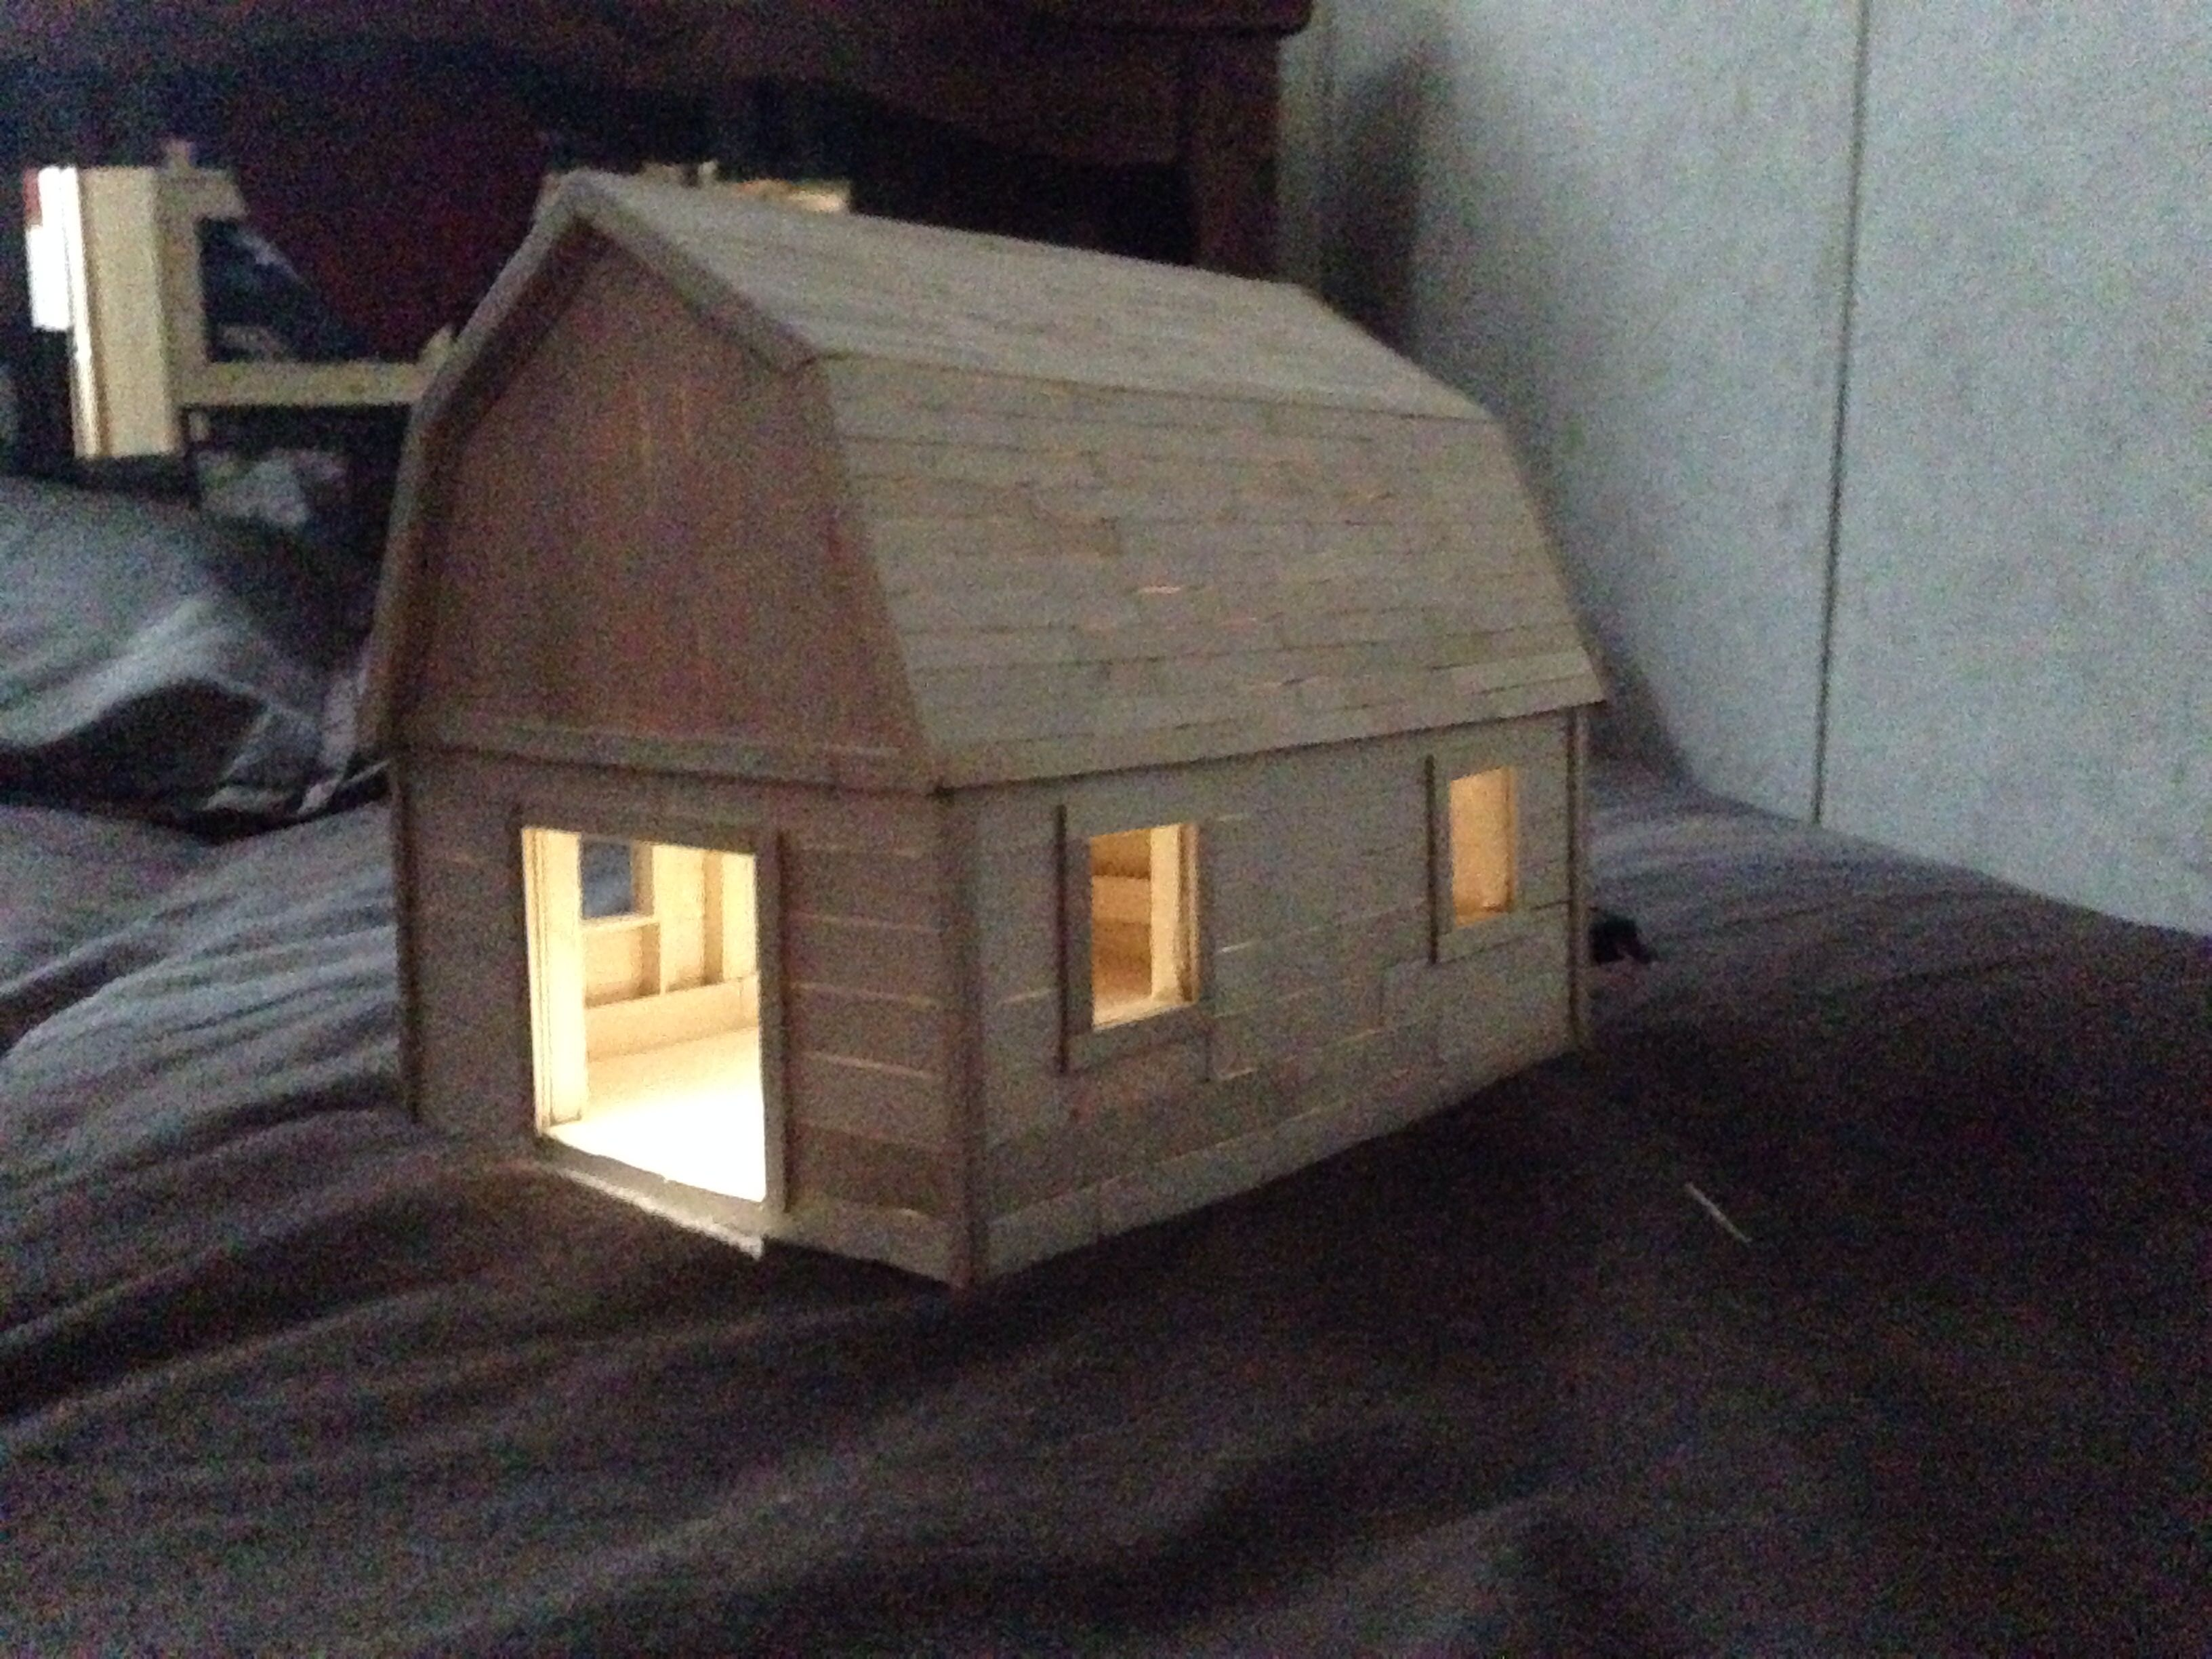 Popsicle stick church craft - Popsicle Stick Barn